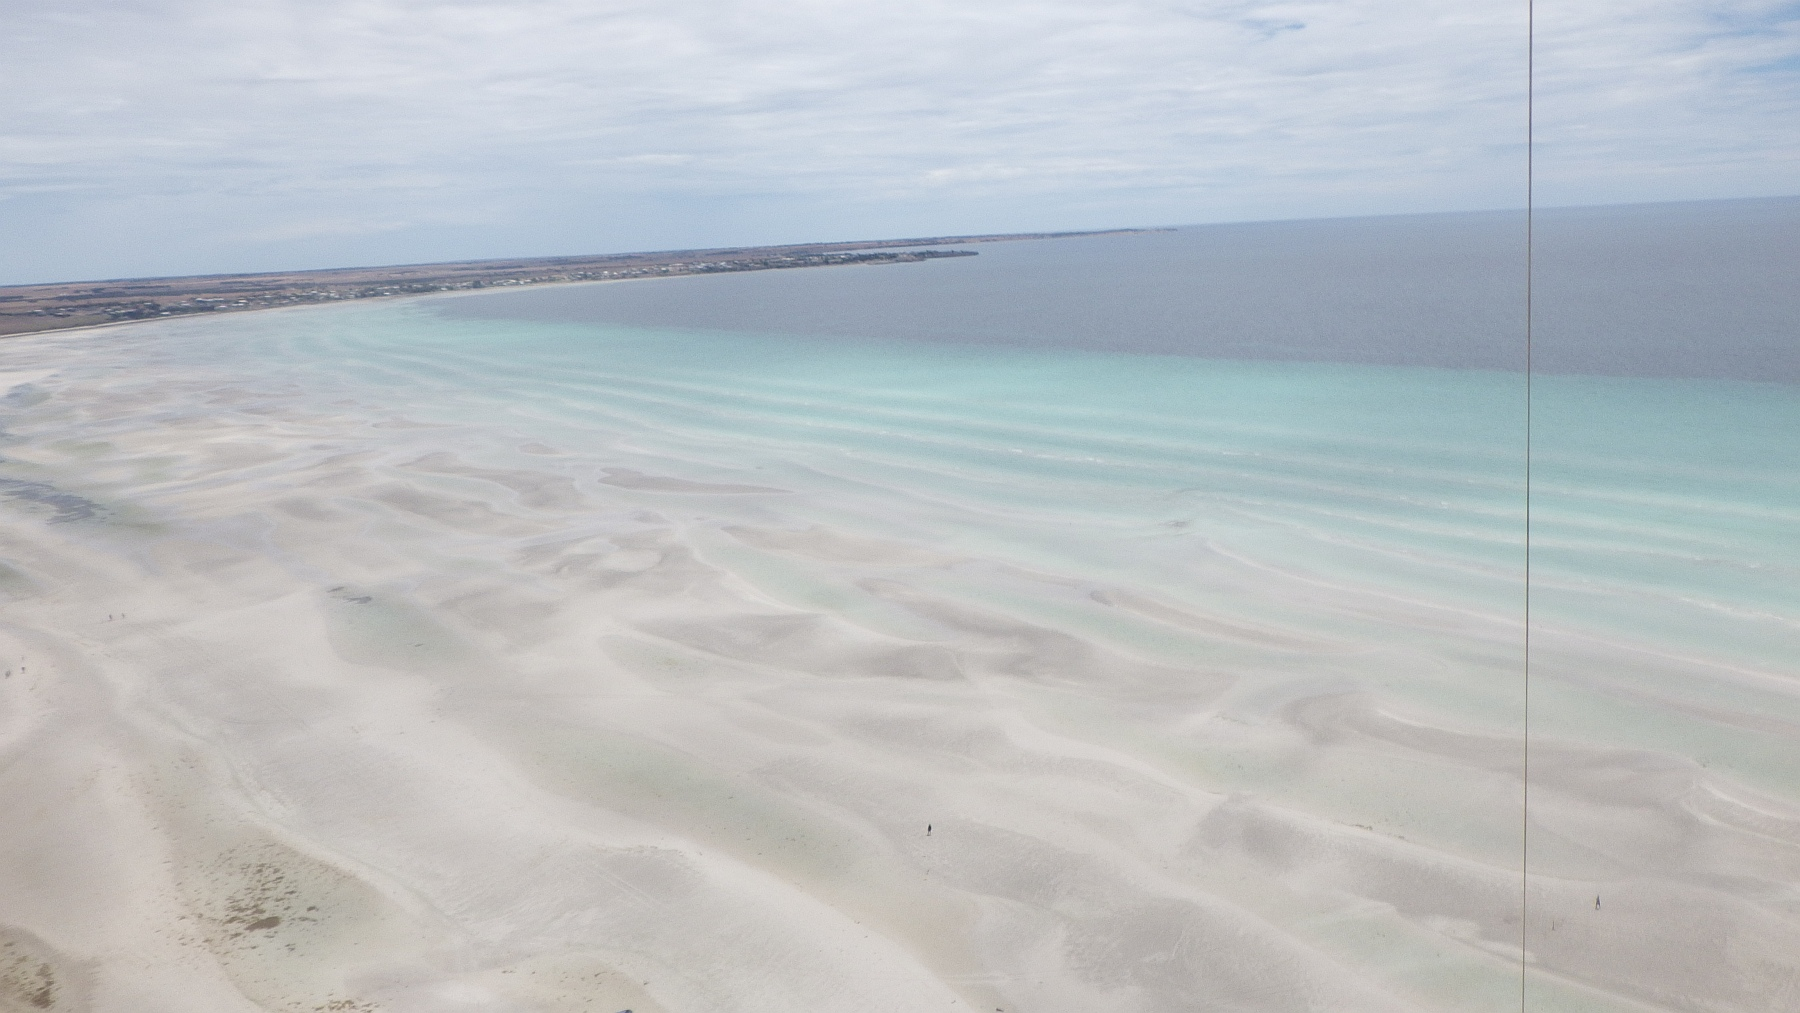 Kite's eye view from over Flaherty's Beach in South Australia.